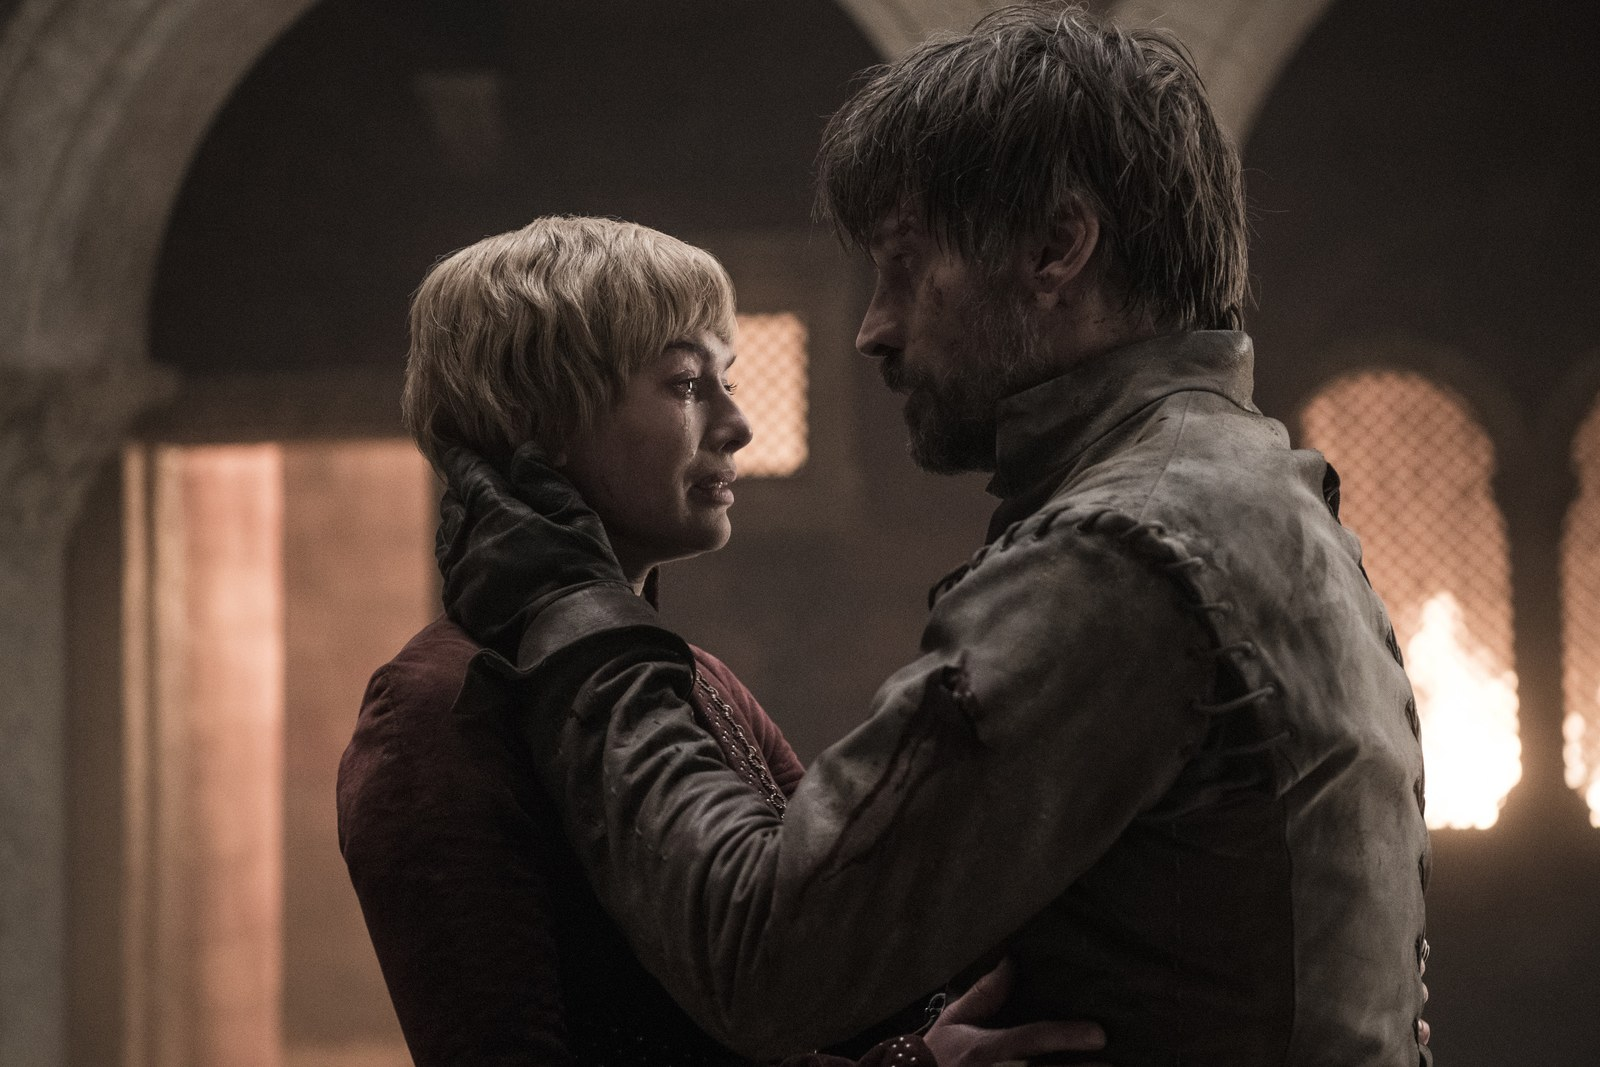 Jaime and Cersei Lannister in season 8 of Game of Thrones.